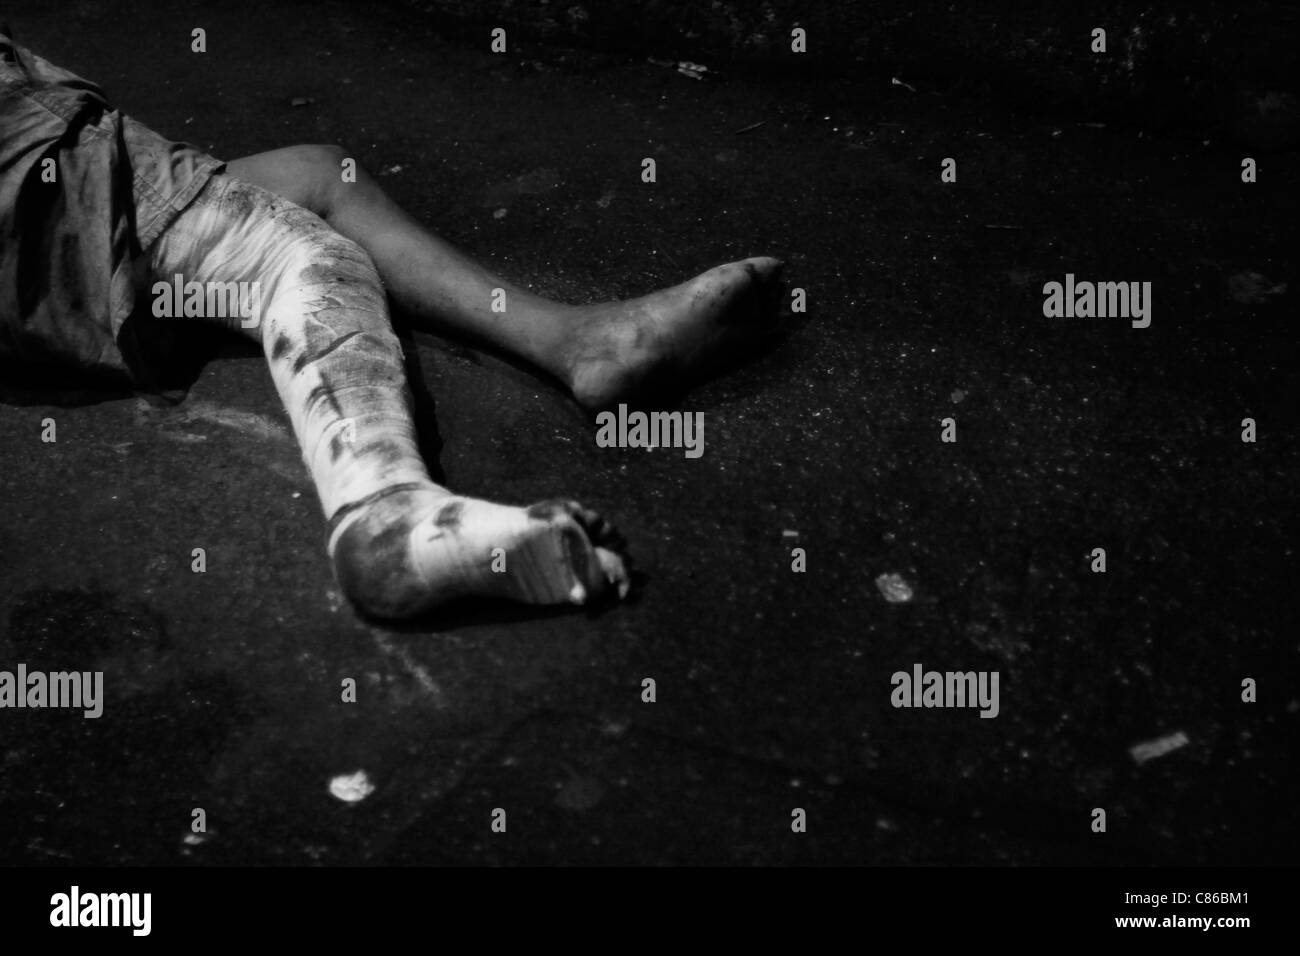 A man with a bandaged leg lies on the streets of Mumbai - Stock Image